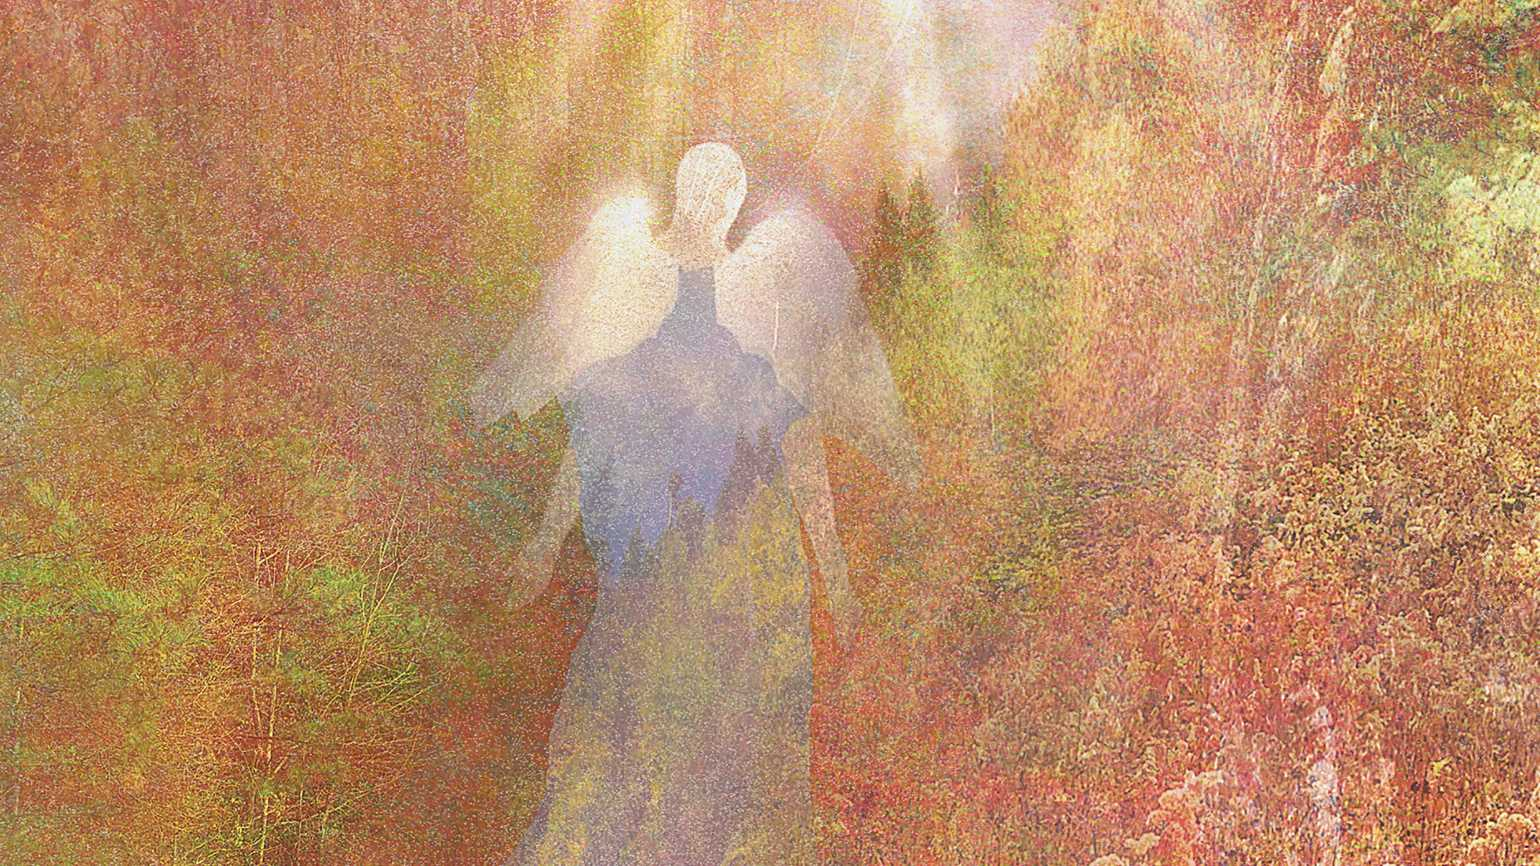 An artist's rendering of a translucent angel hovering in nature with white light above.